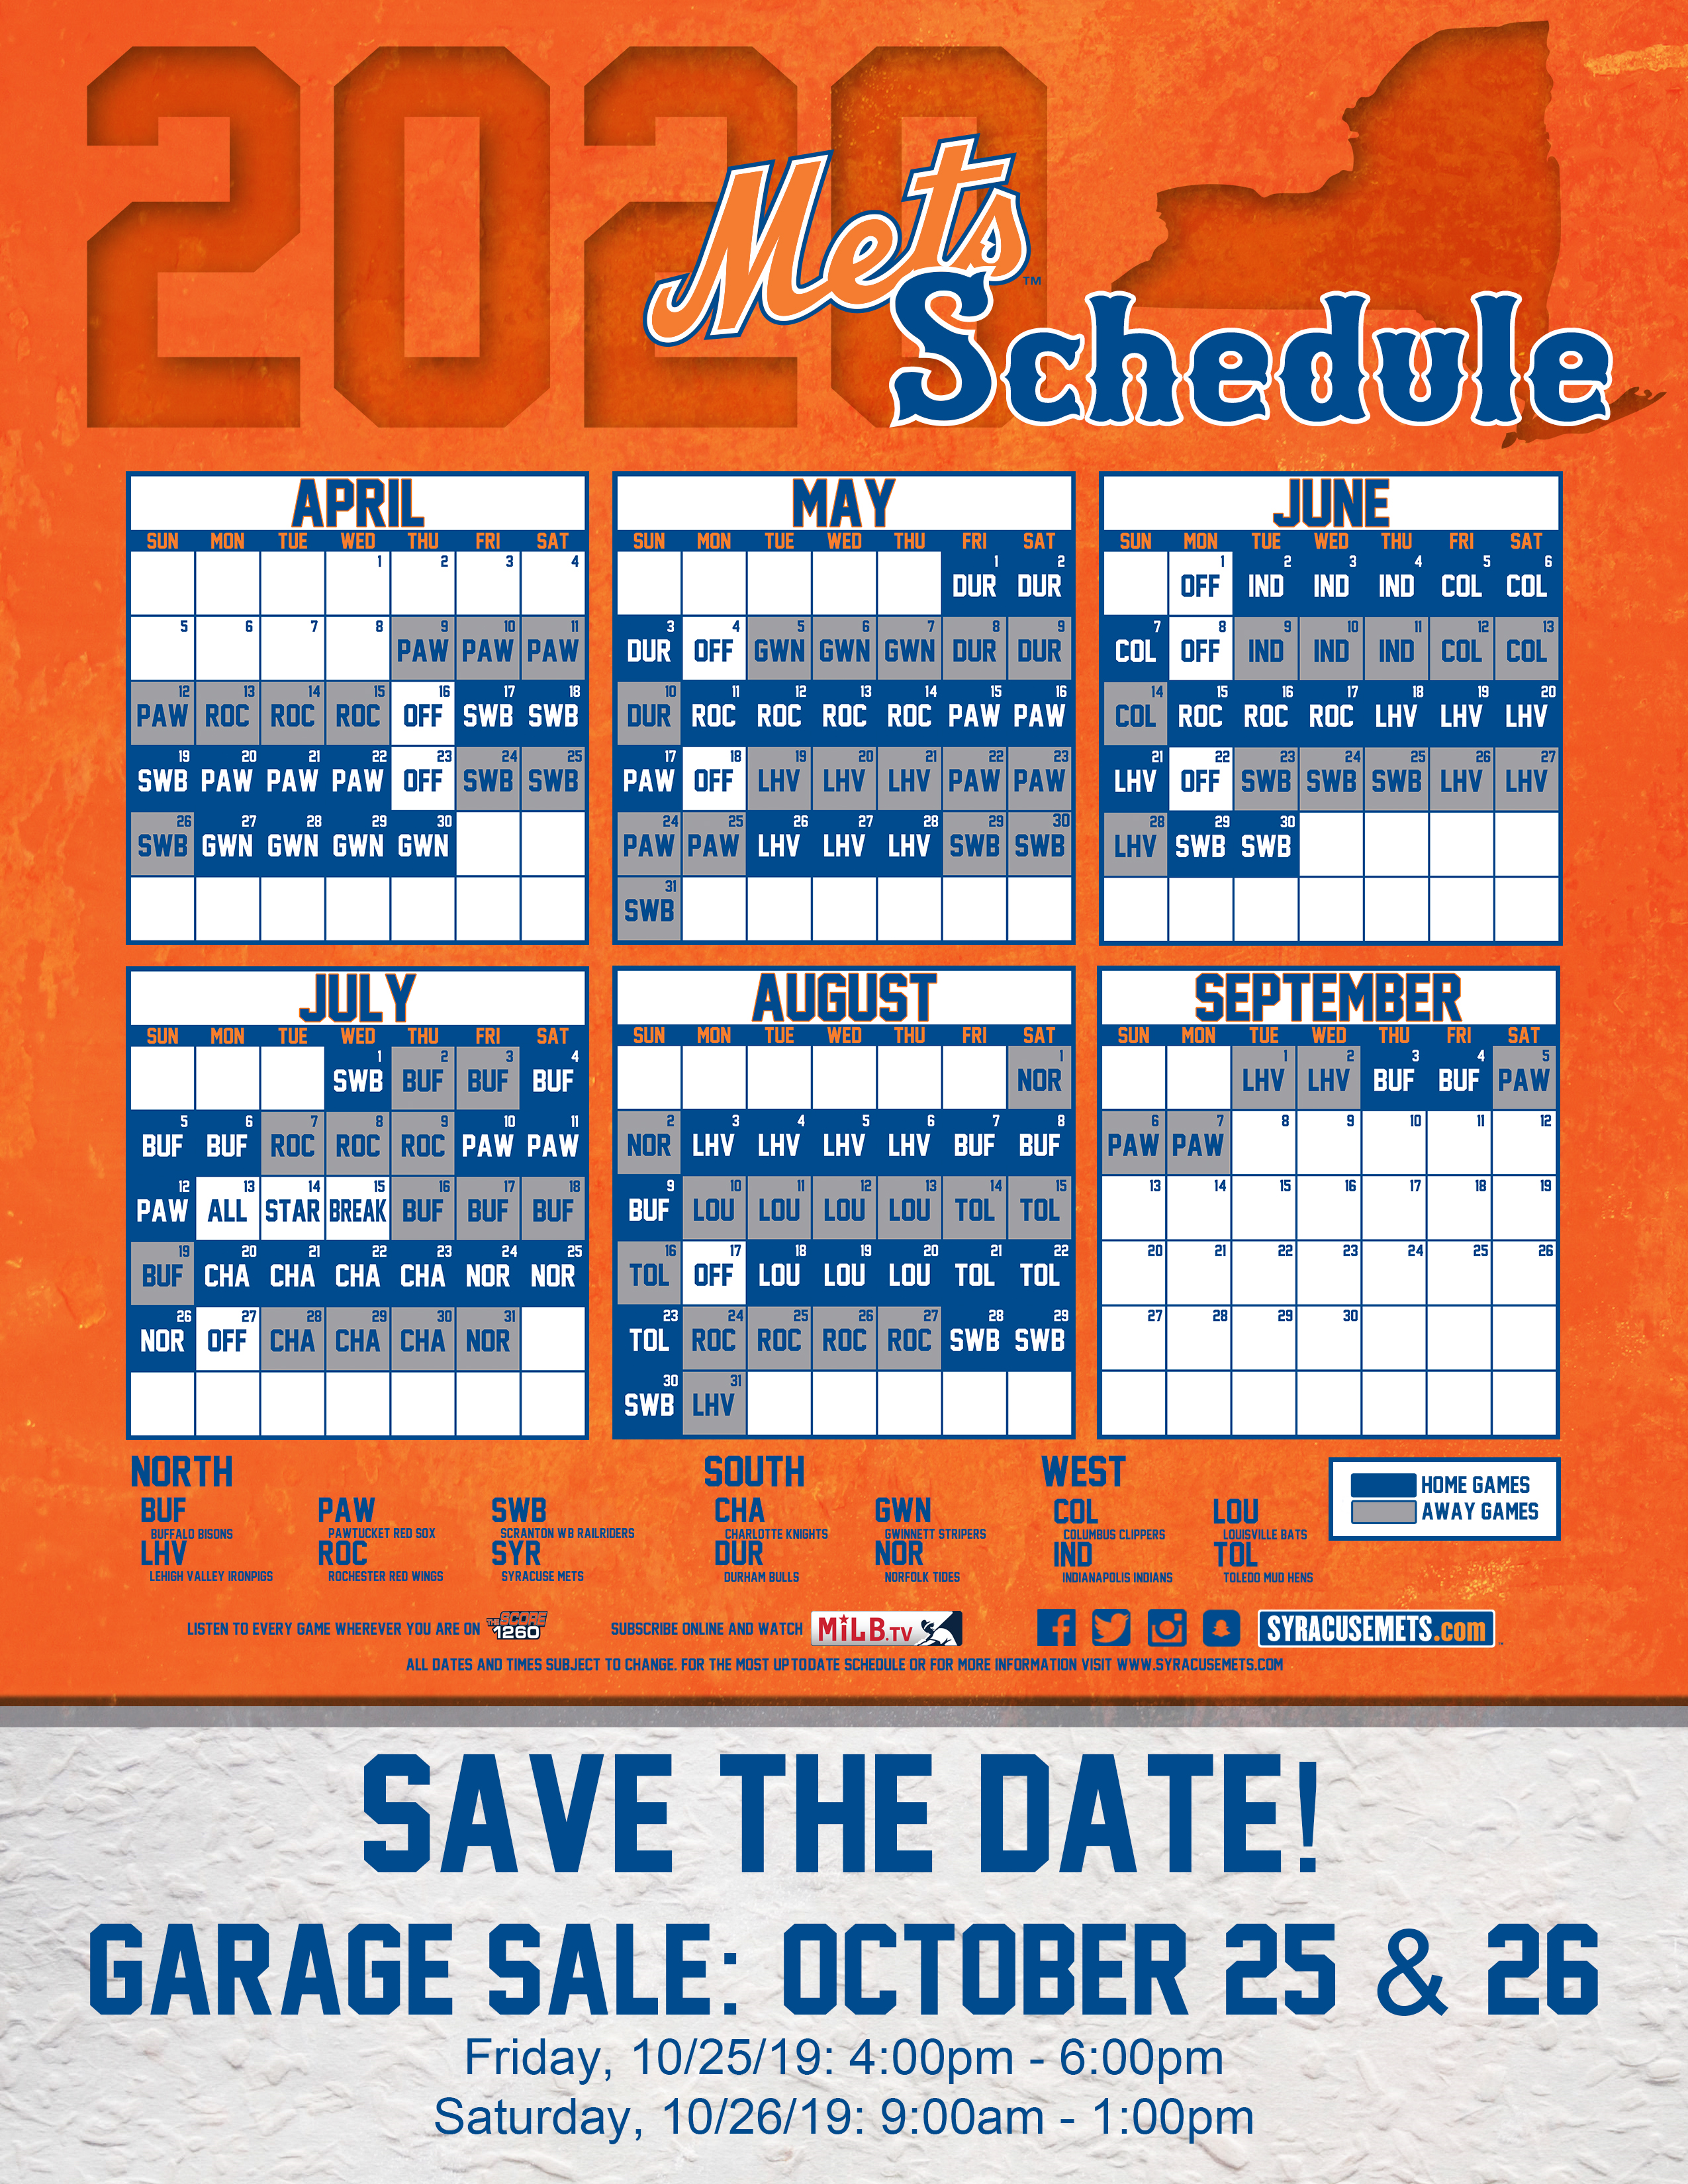 Slobbery image with regard to mets printable schedule